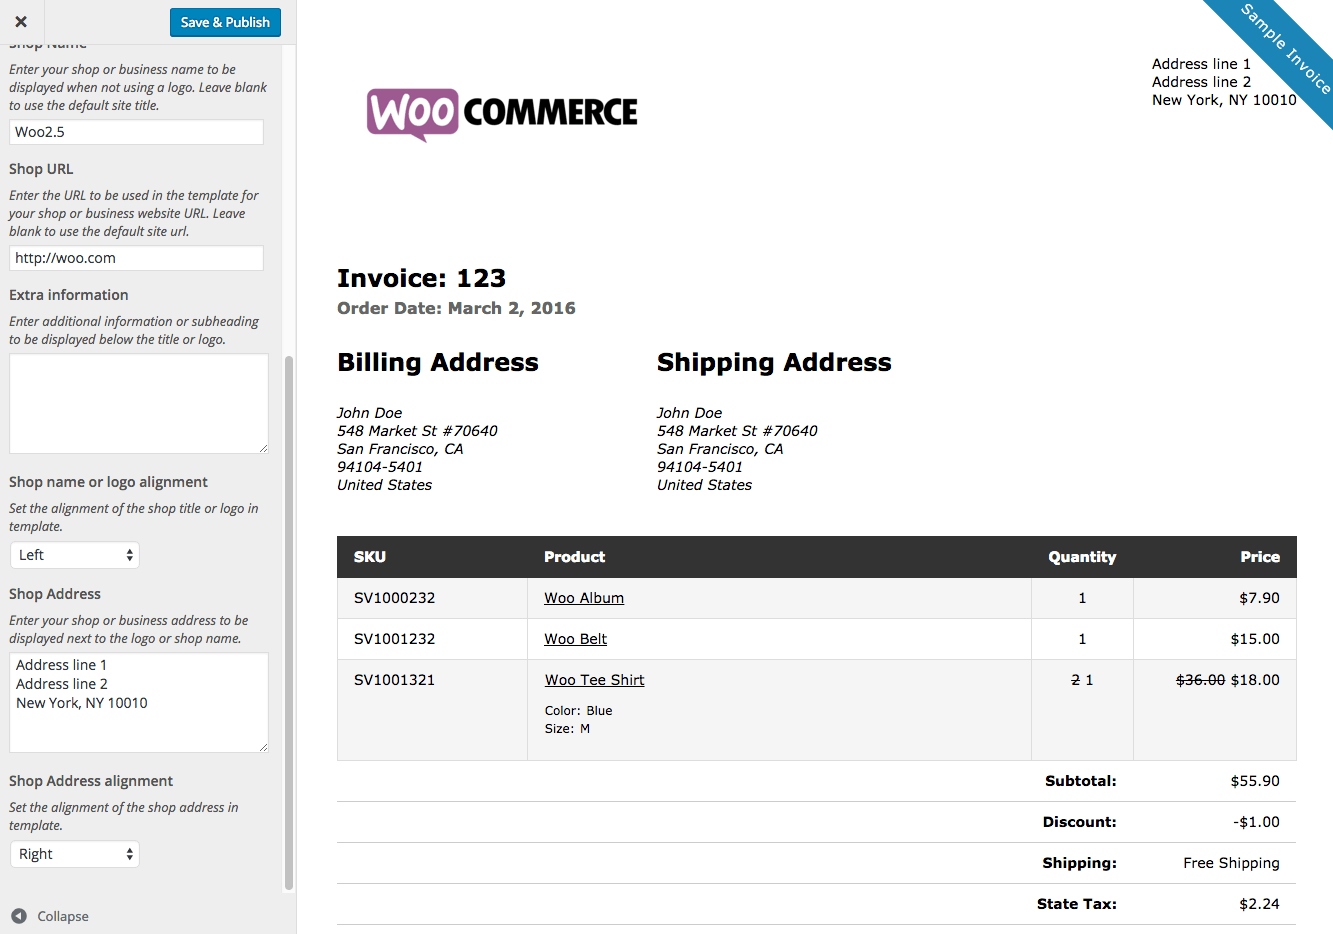 Howcanigettallerus  Outstanding Woocommerce Print Invoices Amp Packing Lists  Woocommerce Docs With Remarkable Woocommerce Print Invoices  Packing Lists Customizer With Captivating Invoice Financing Uk Also Mac Invoicing In Addition Proforma Invoice Software And Invoicing Application As Well As Invoice To Print Additionally Dental Invoice Sample From Docswoocommercecom With Howcanigettallerus  Remarkable Woocommerce Print Invoices Amp Packing Lists  Woocommerce Docs With Captivating Woocommerce Print Invoices  Packing Lists Customizer And Outstanding Invoice Financing Uk Also Mac Invoicing In Addition Proforma Invoice Software From Docswoocommercecom